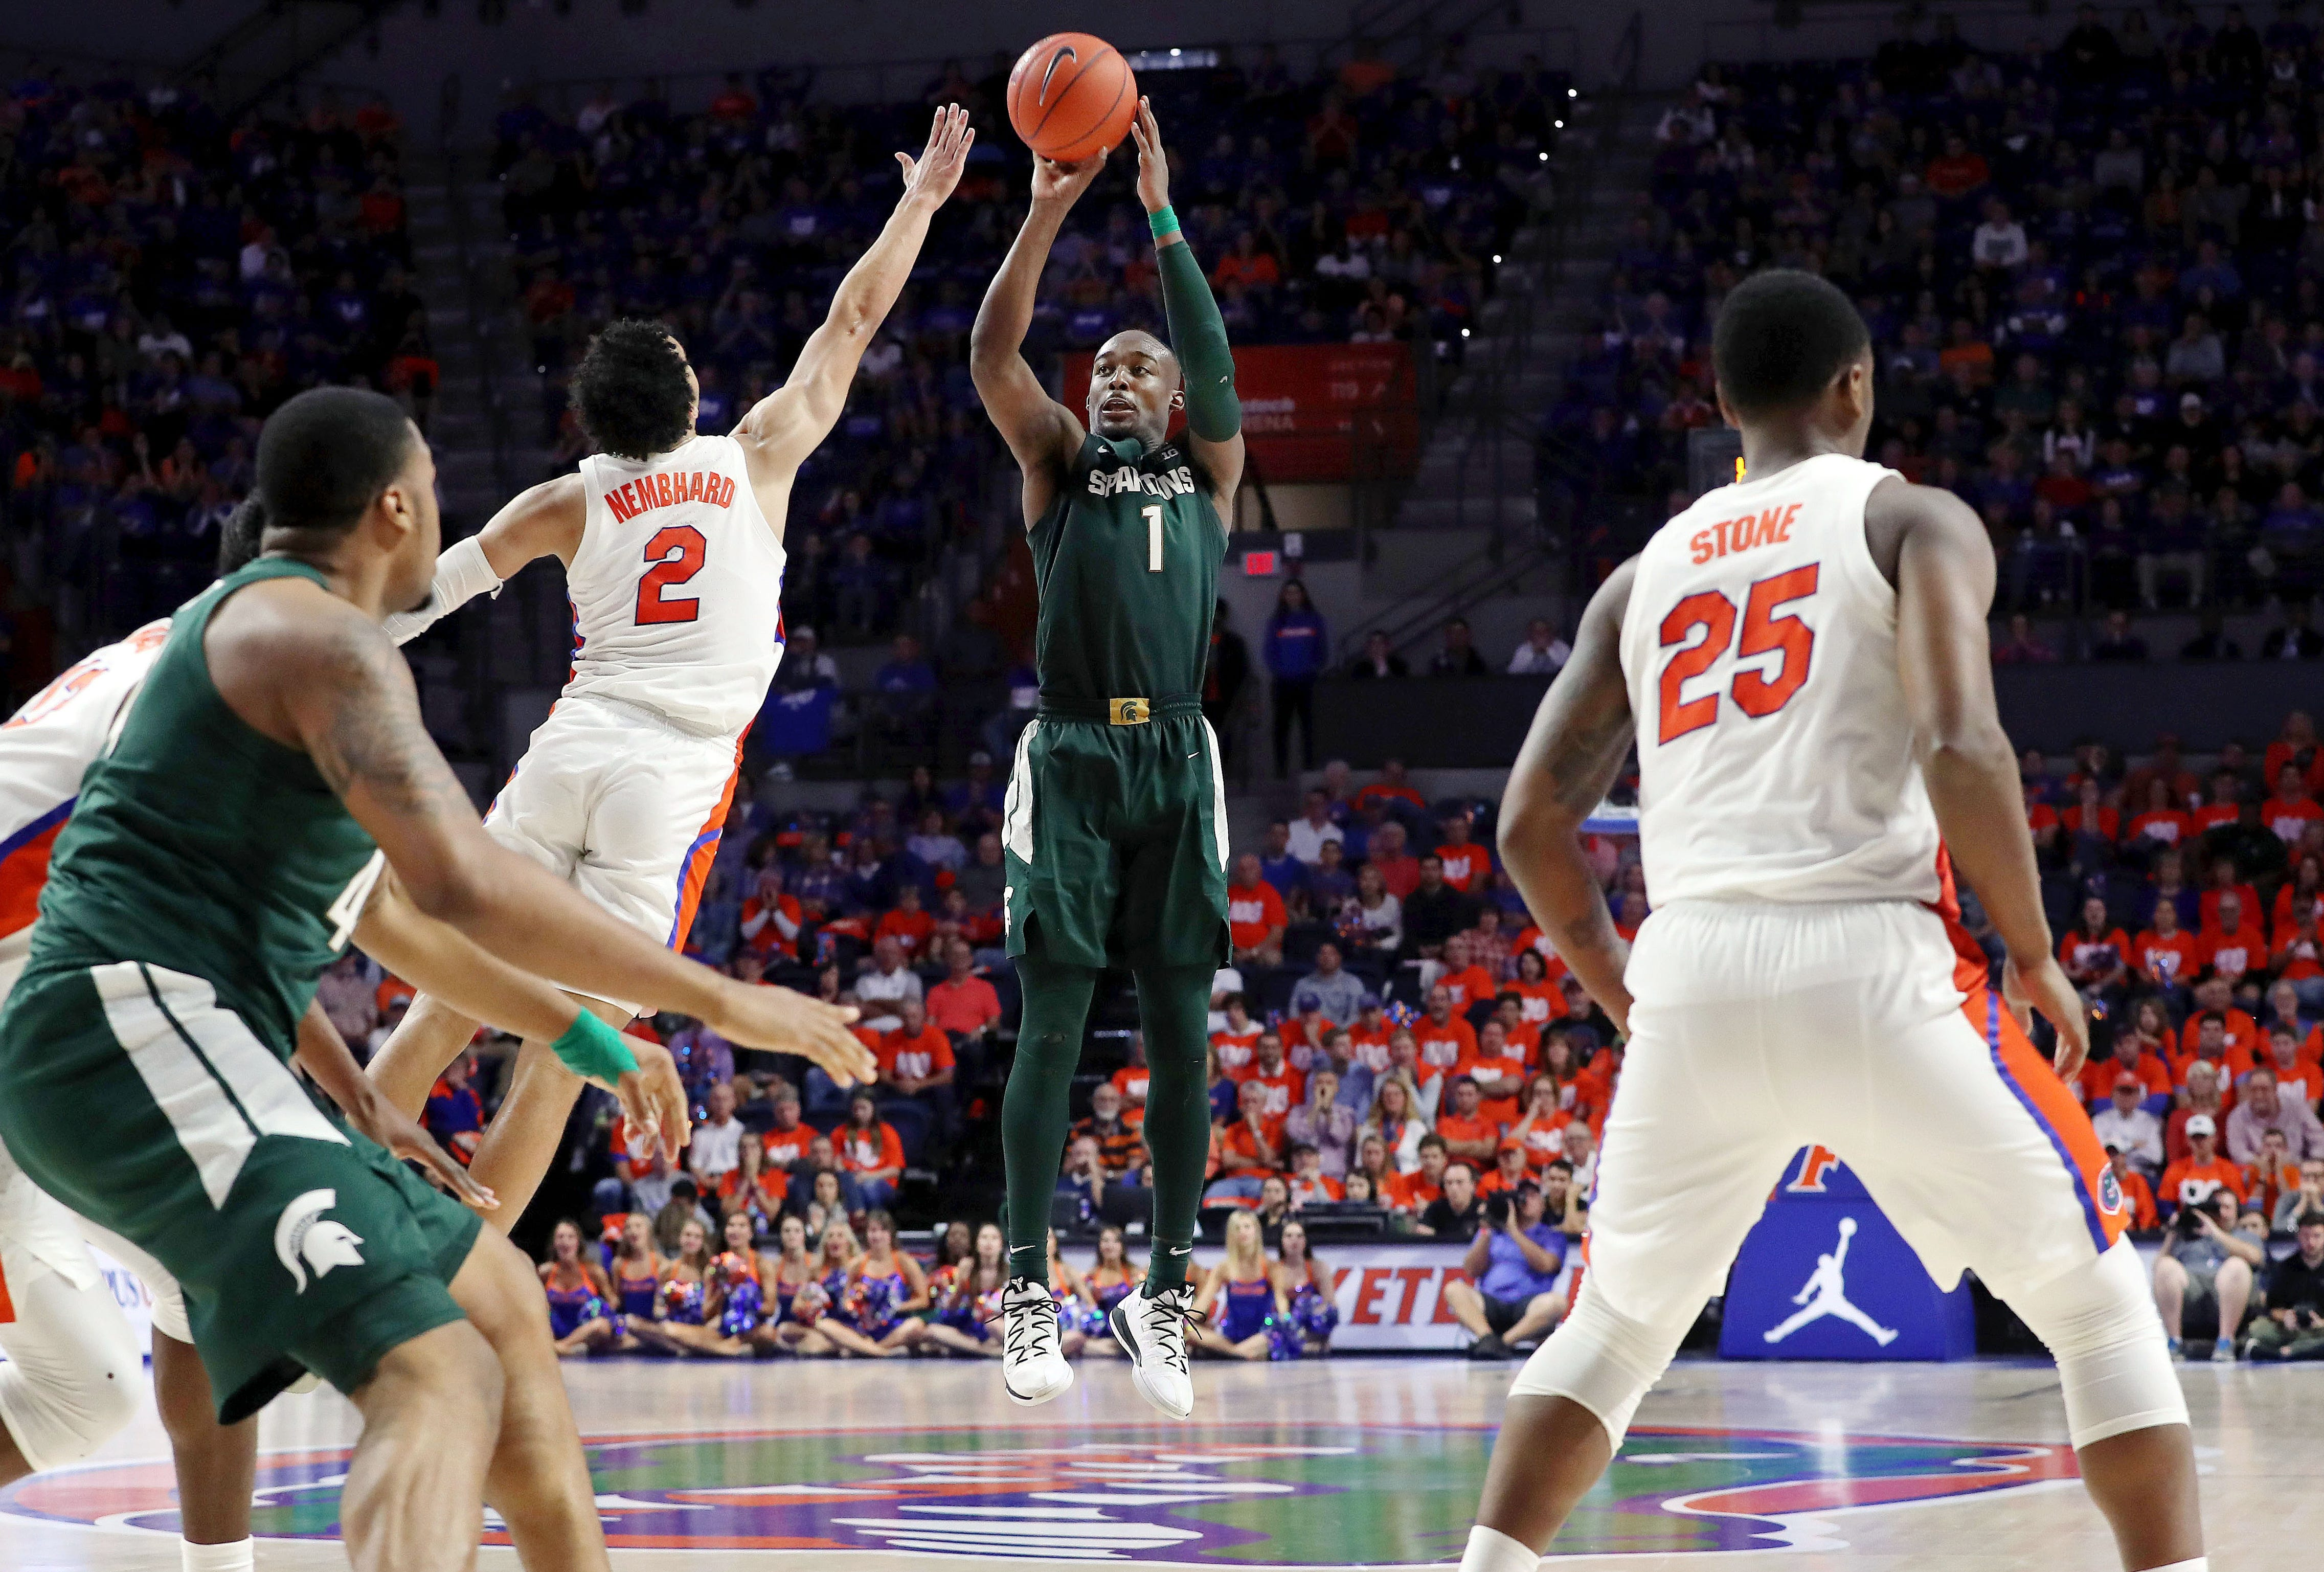 Michigan State guard Joshua Langford  shoots over Florida guard Andrew Nembhard during their game in 2018.